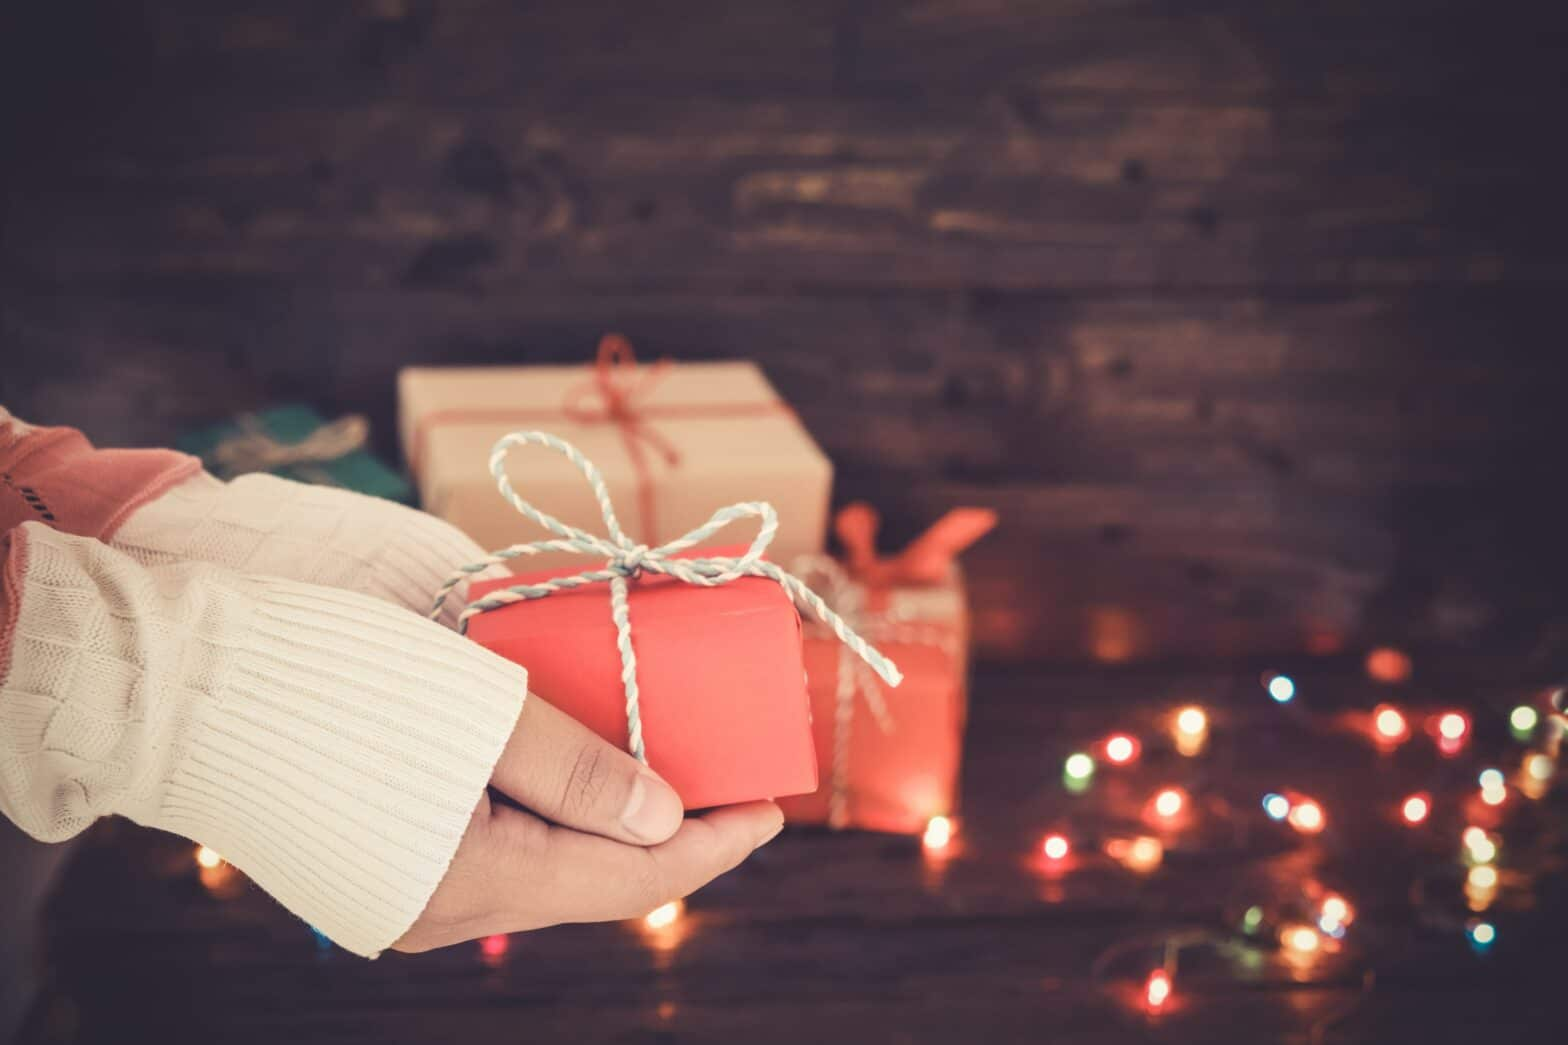 Hands giving a gift